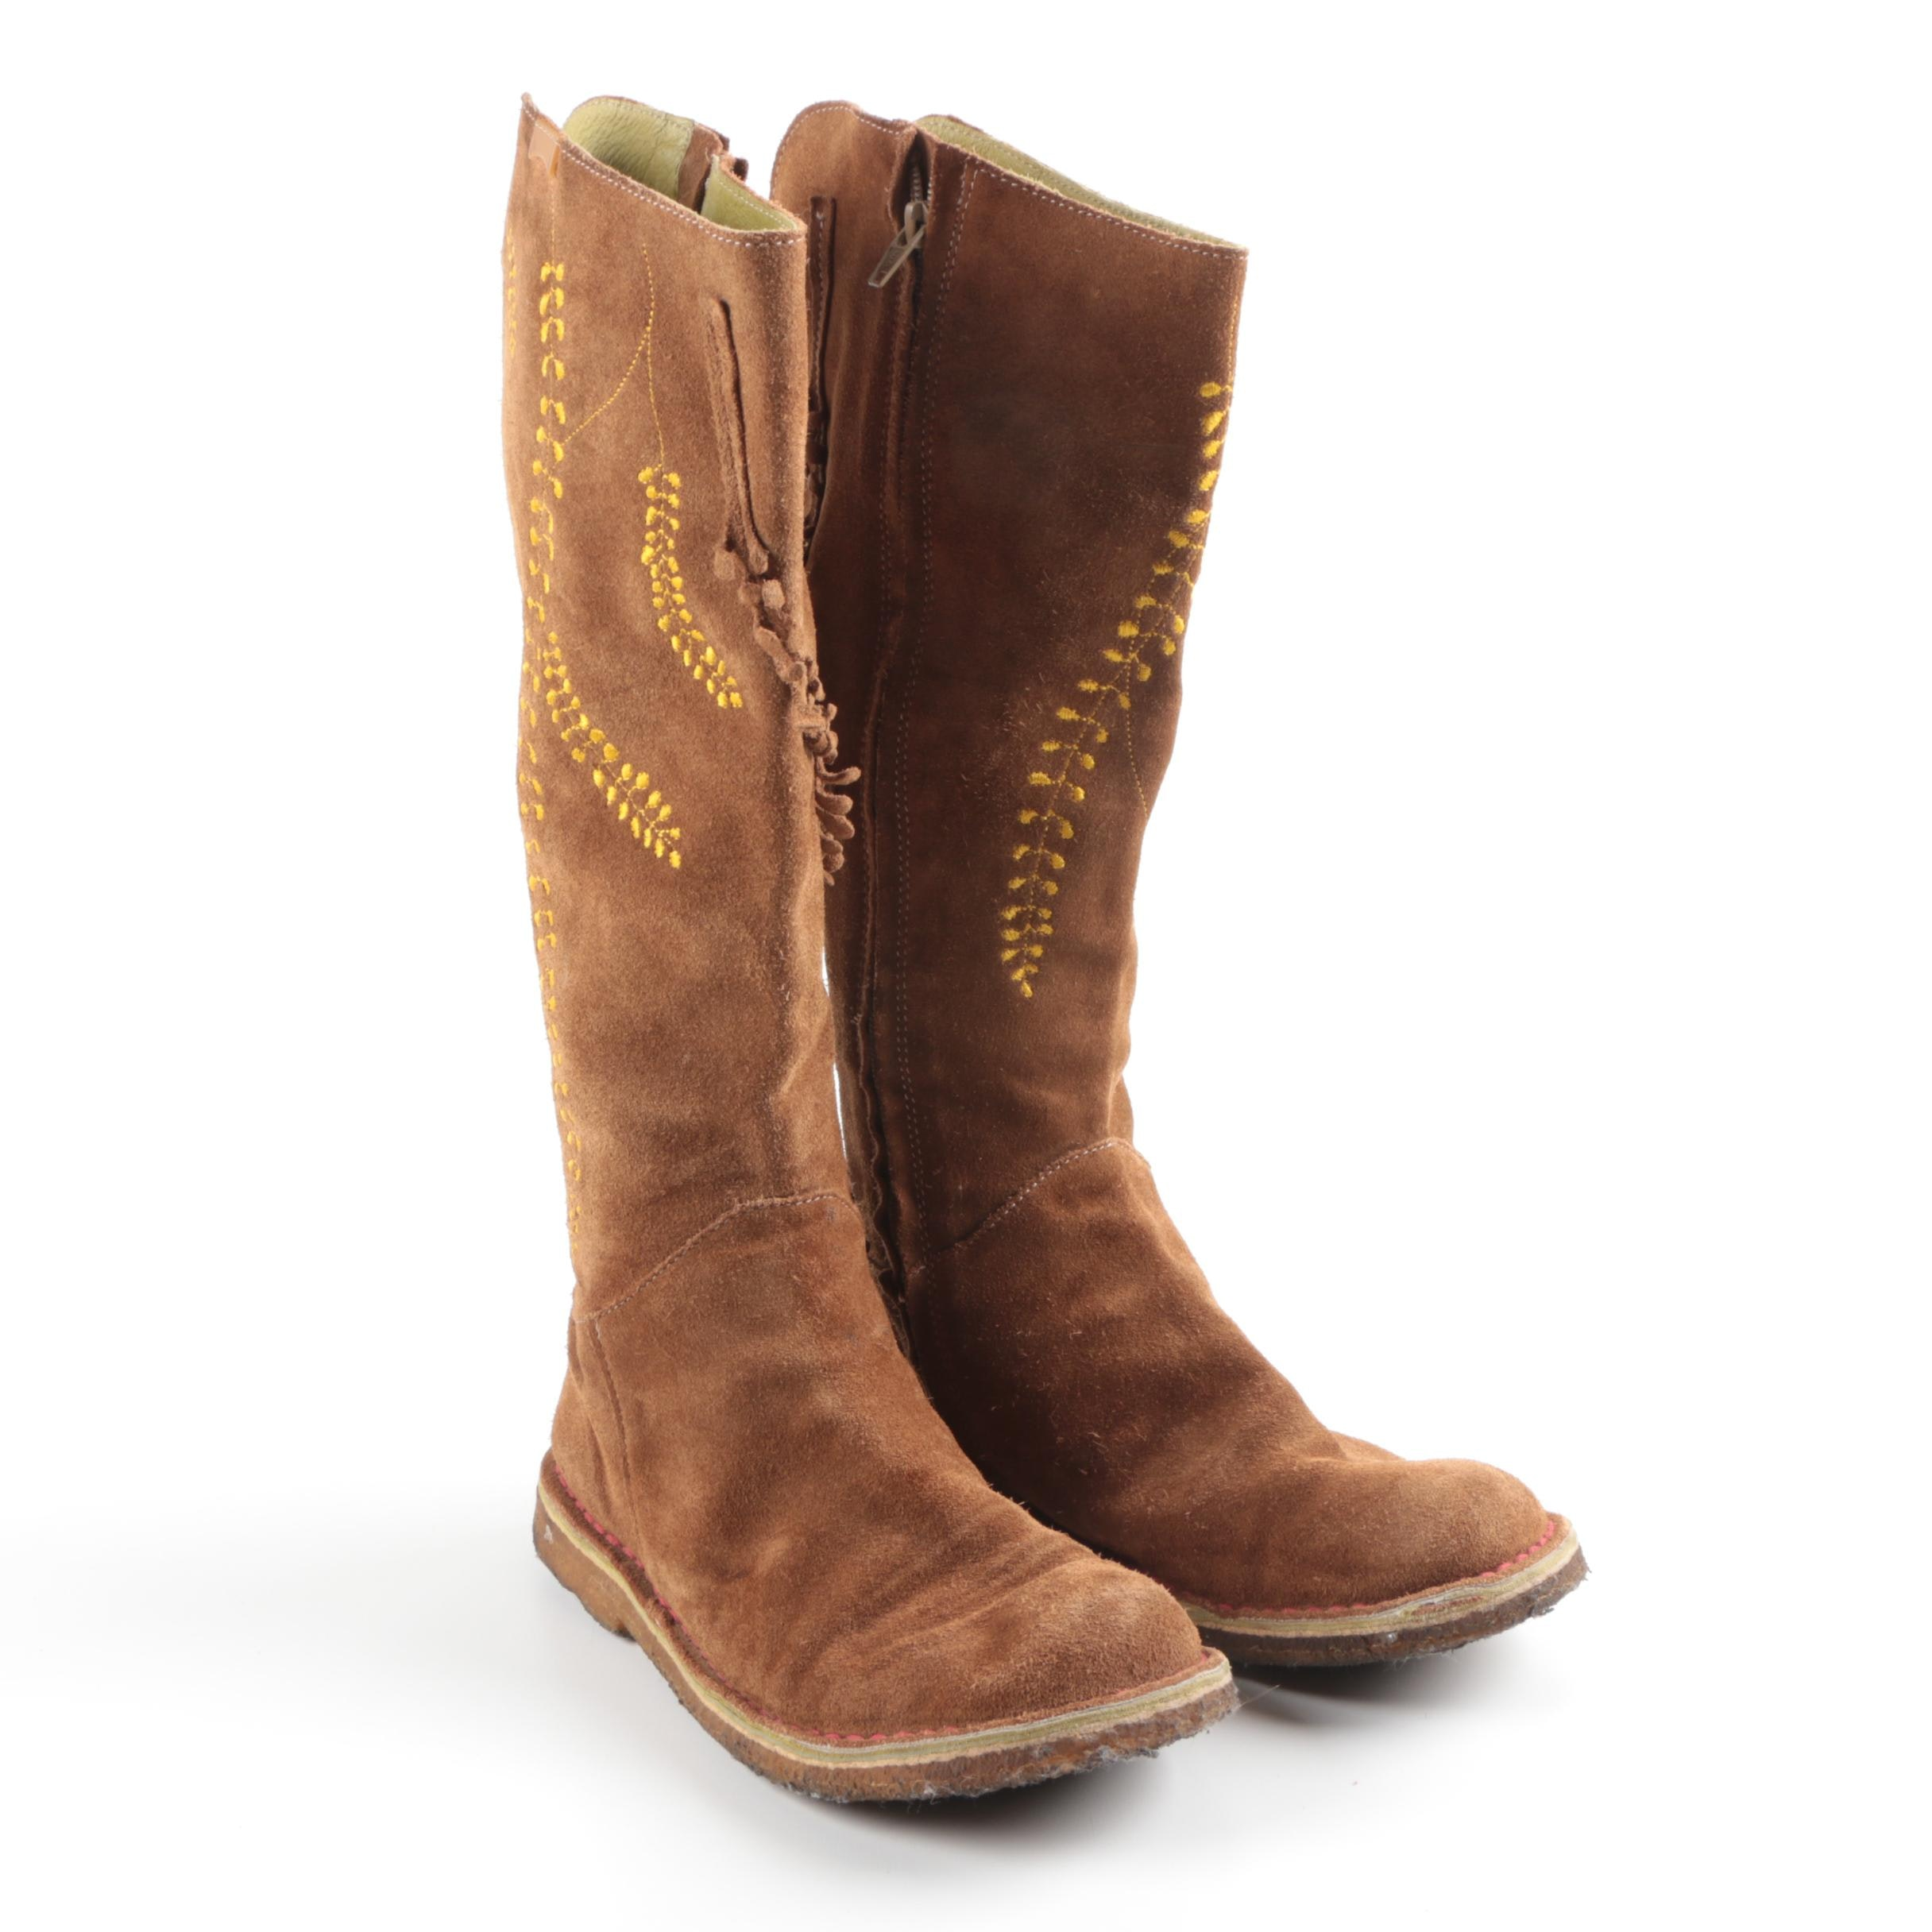 Women's 100% Camper Brown Suede Boots